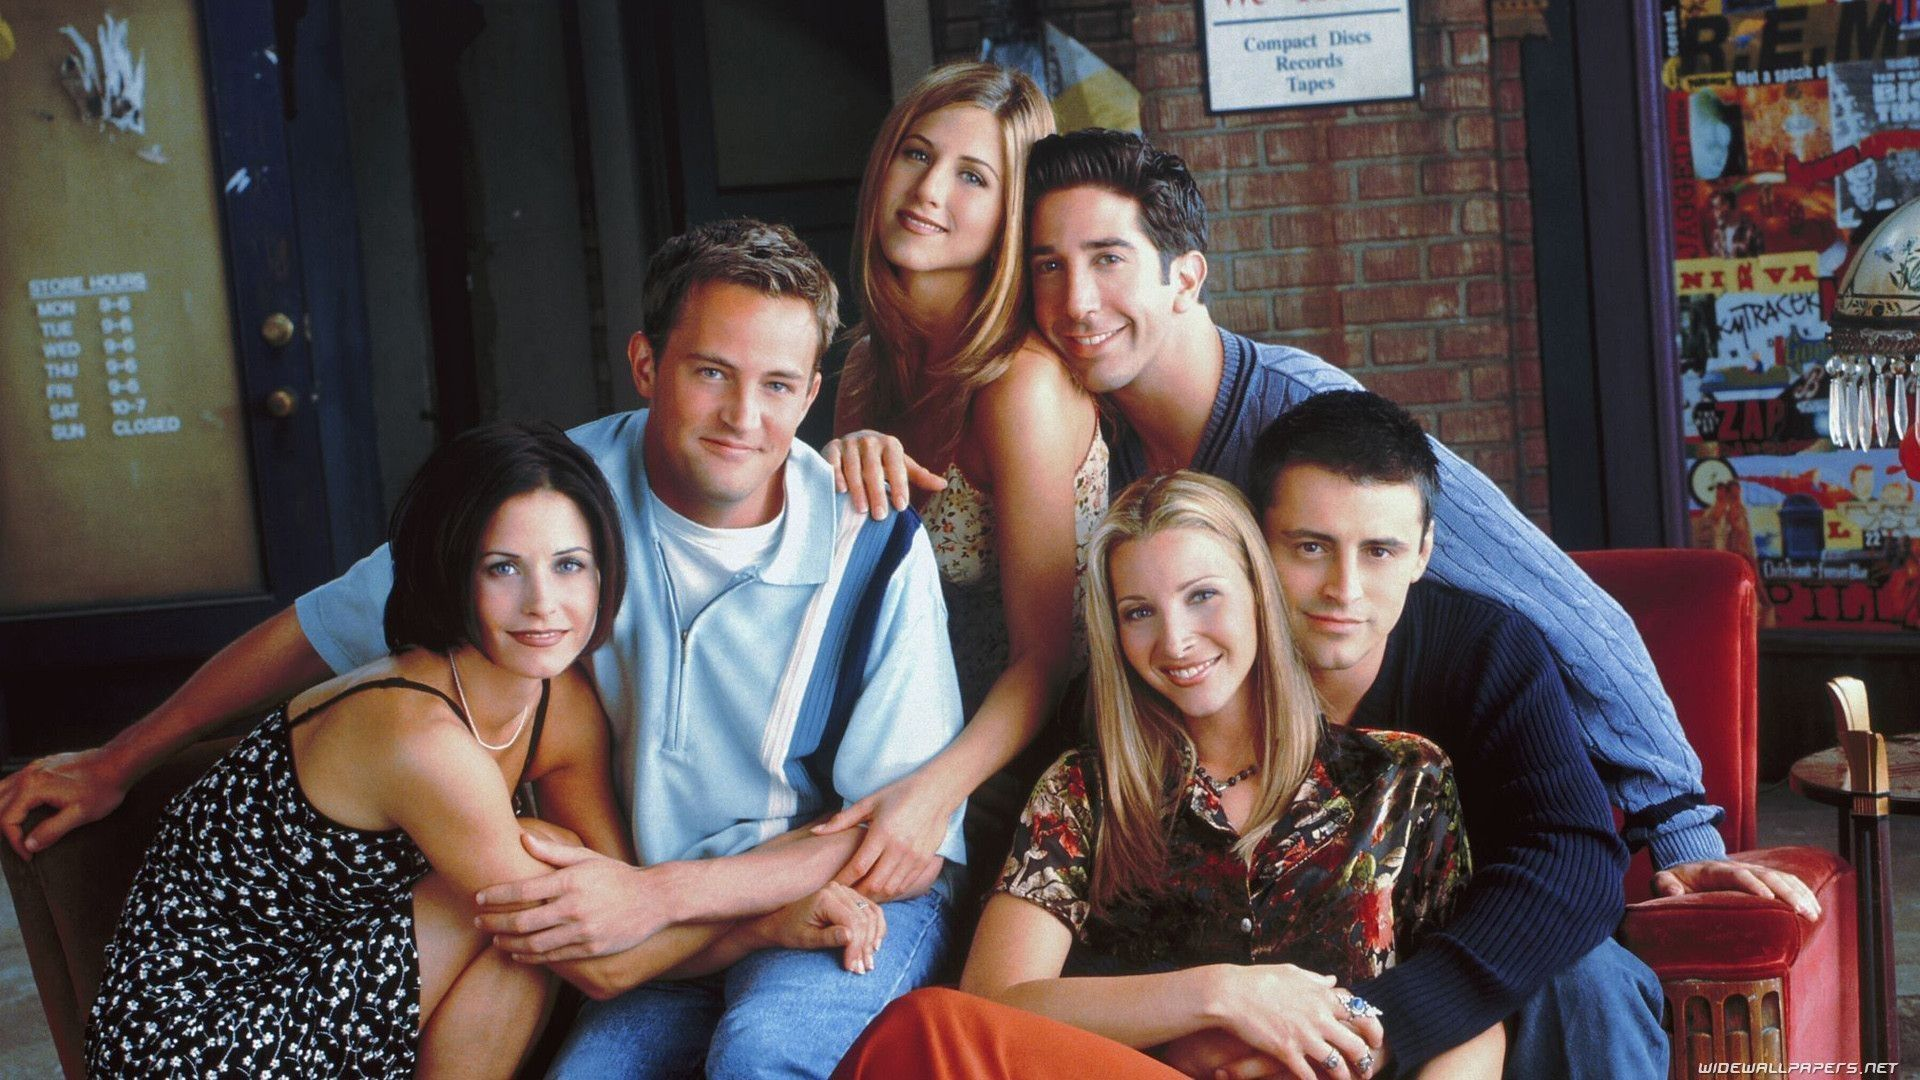 Friends Tv Show Wallpapers Top Free Friends Tv Show Backgrounds